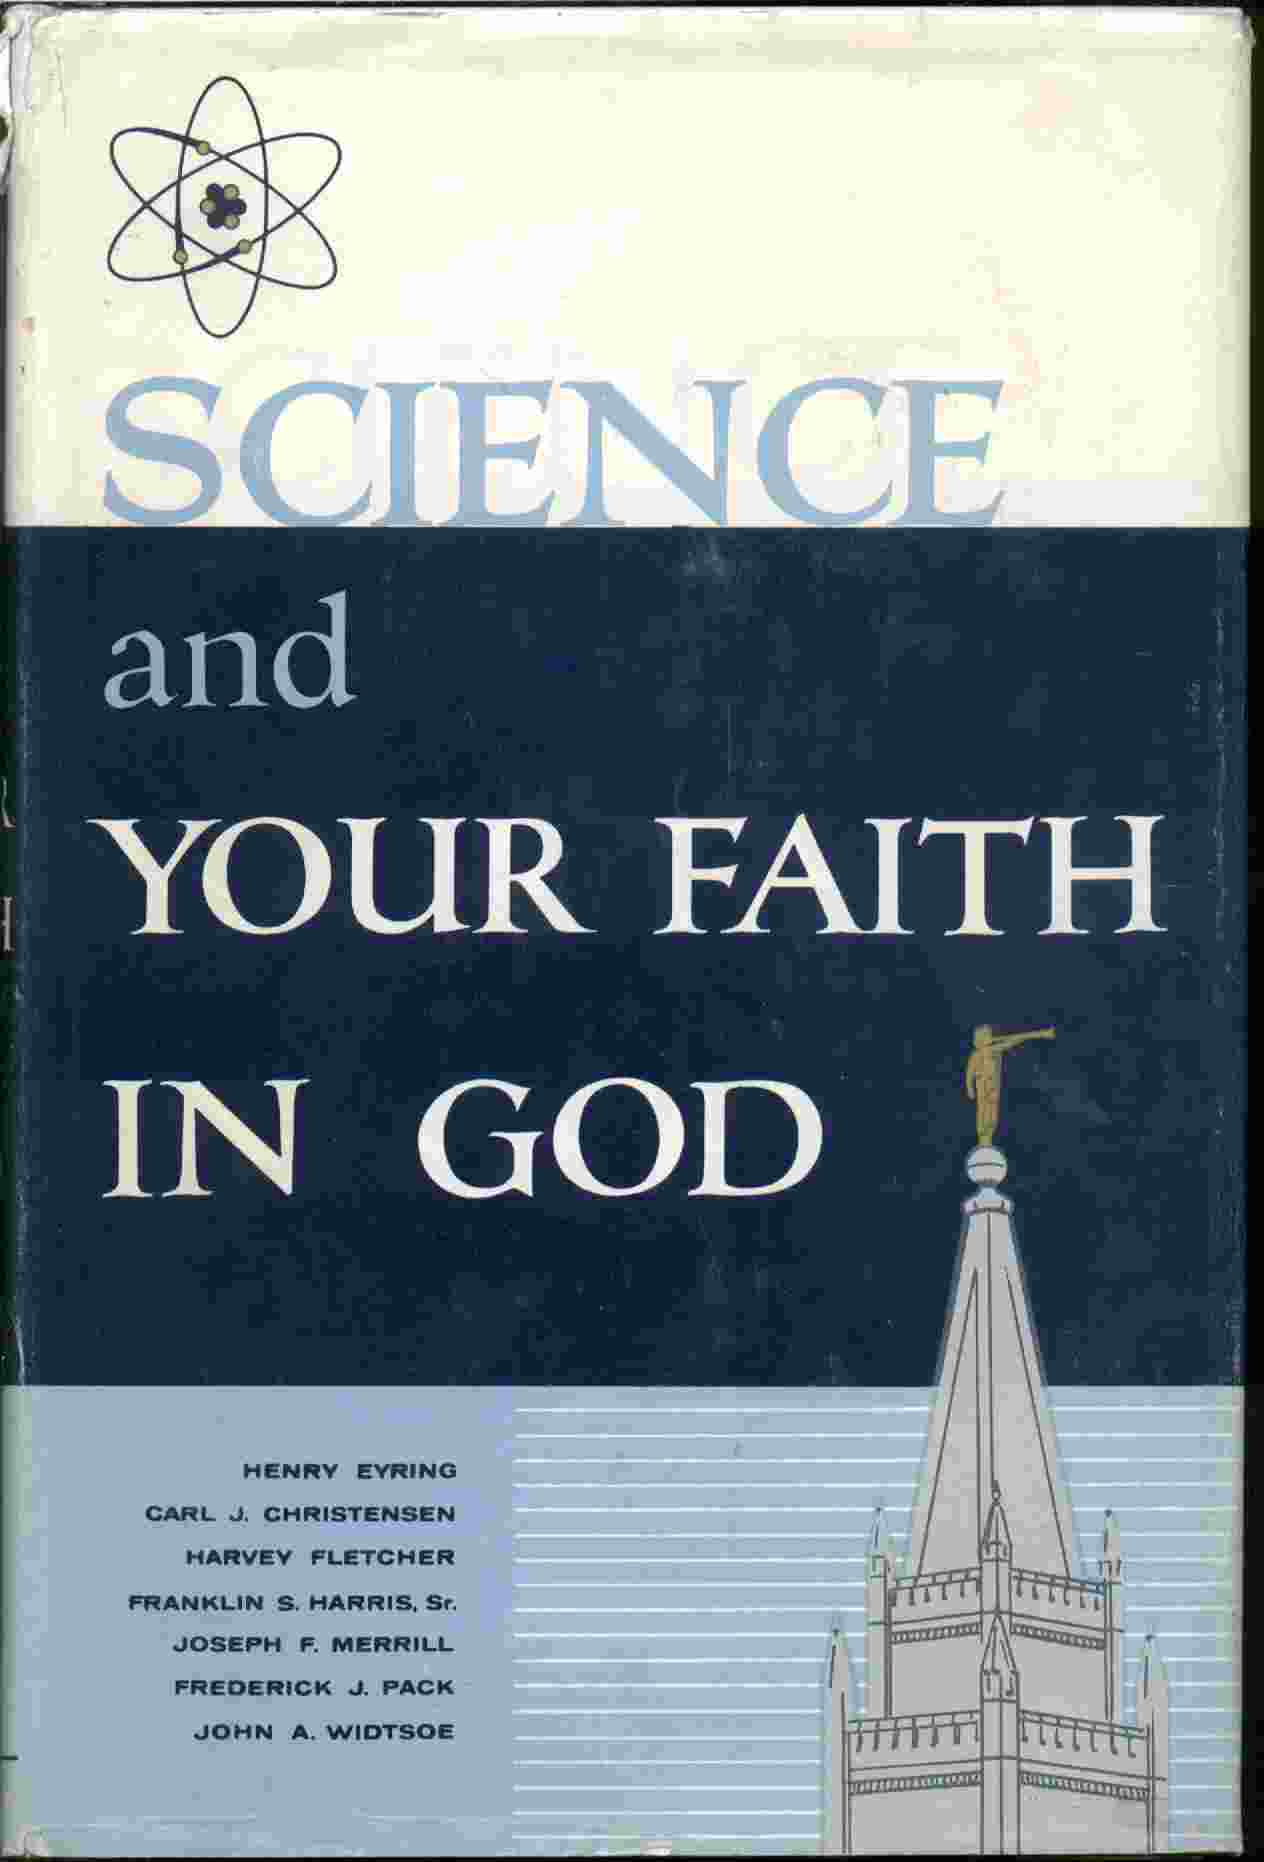 Image for SCIENCE AND YOUR FAITH IN GOD -  A Selected Compilation of Writings and Talks by Prominent Latter-Day Saints Scientists on the Subjects of Science and Religion